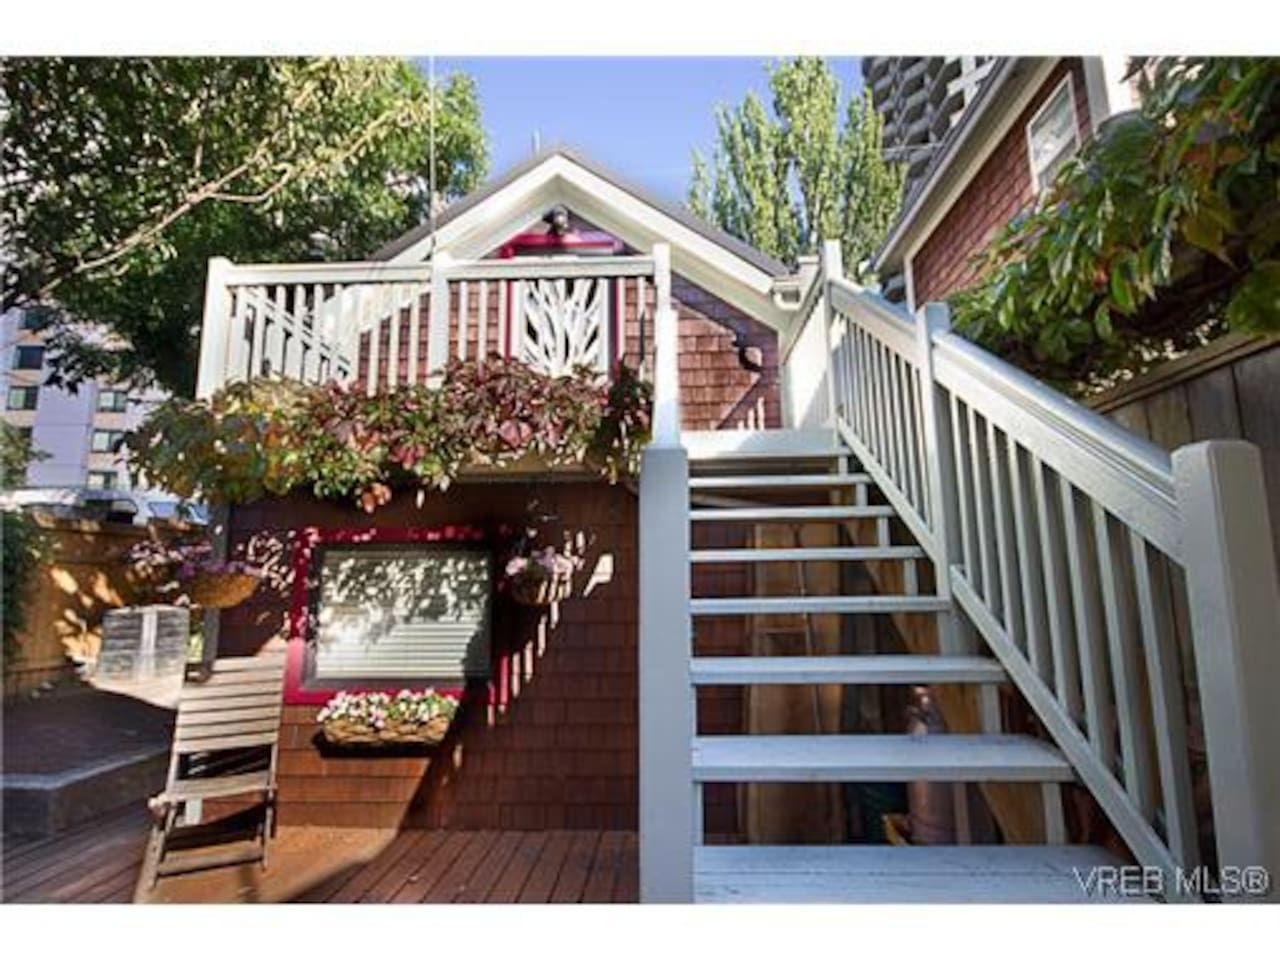 Cute suite on 2 levels in a Carriage House with balcony!